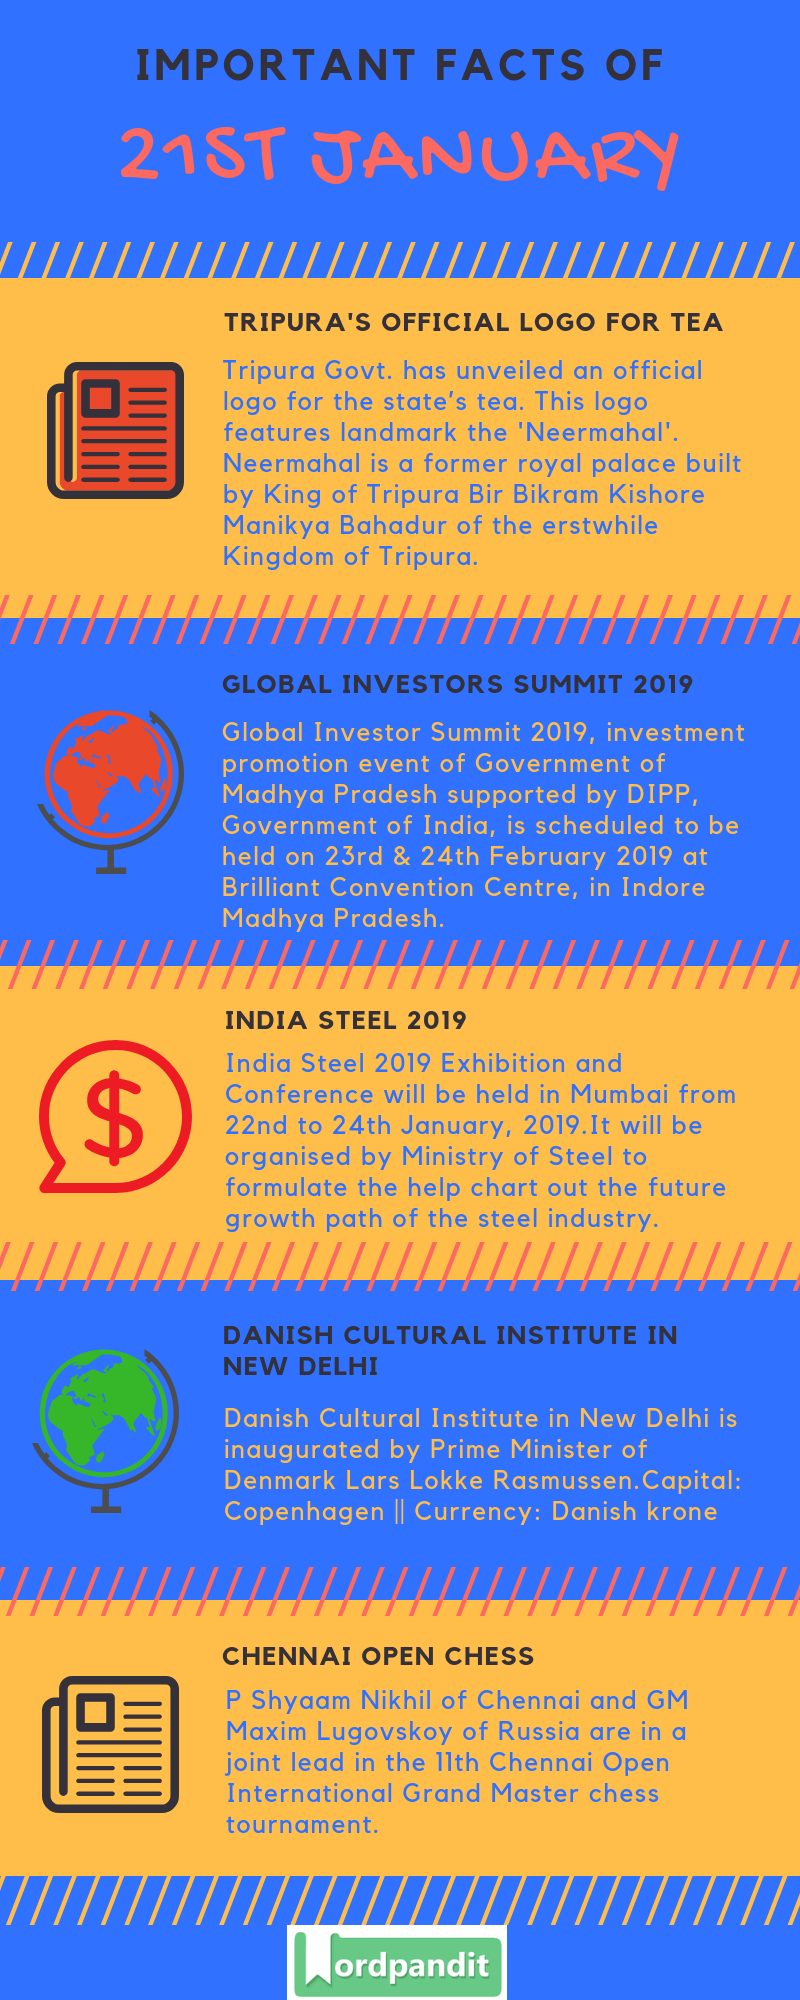 Daily Current Affairs 21 January 2019 Current Affairs Quiz 21 January 2019 Current Affairs Infographic